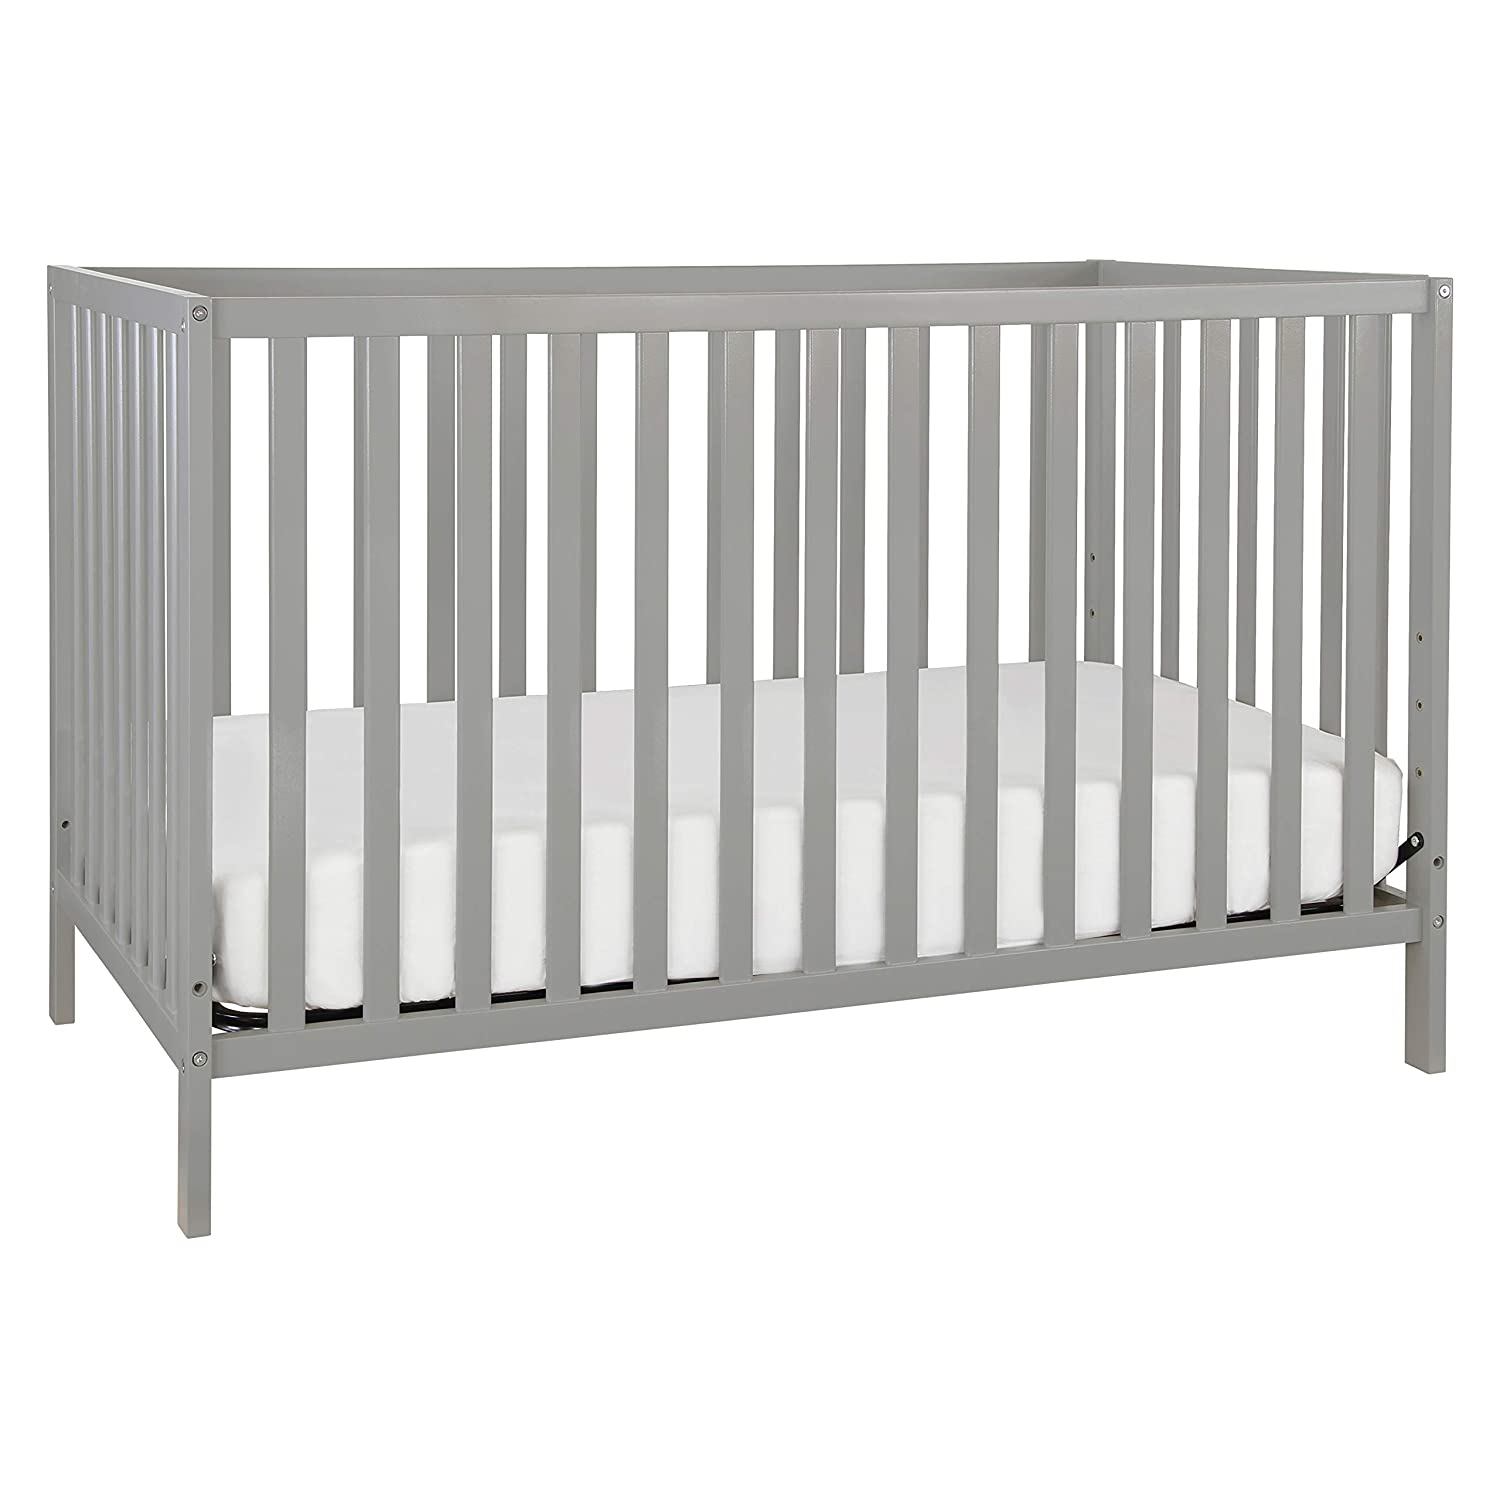 Union 3-in-1 Convertible Crib: Best Affordable baby crib